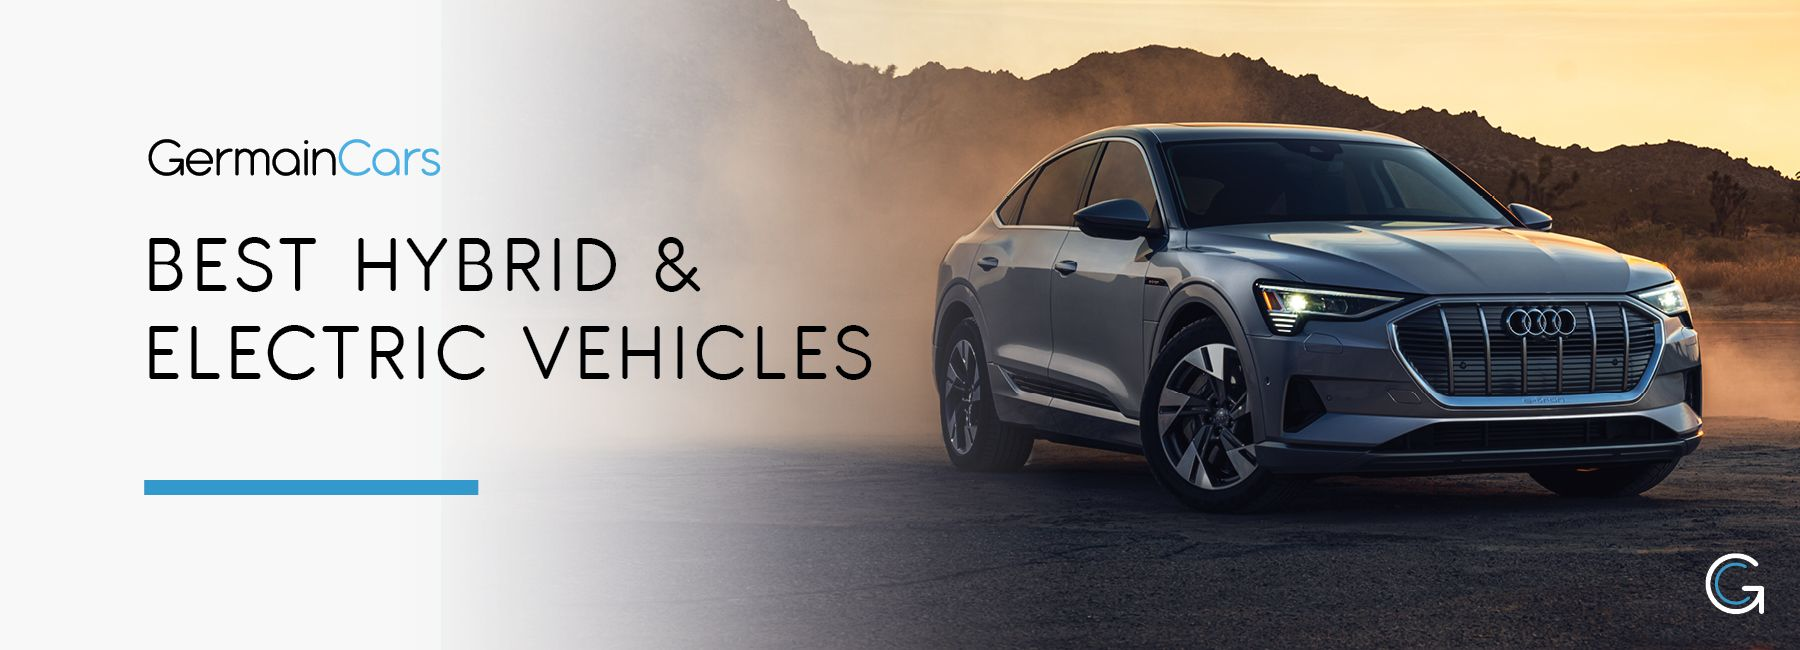 Best Electric Vehicles at Germain Cars